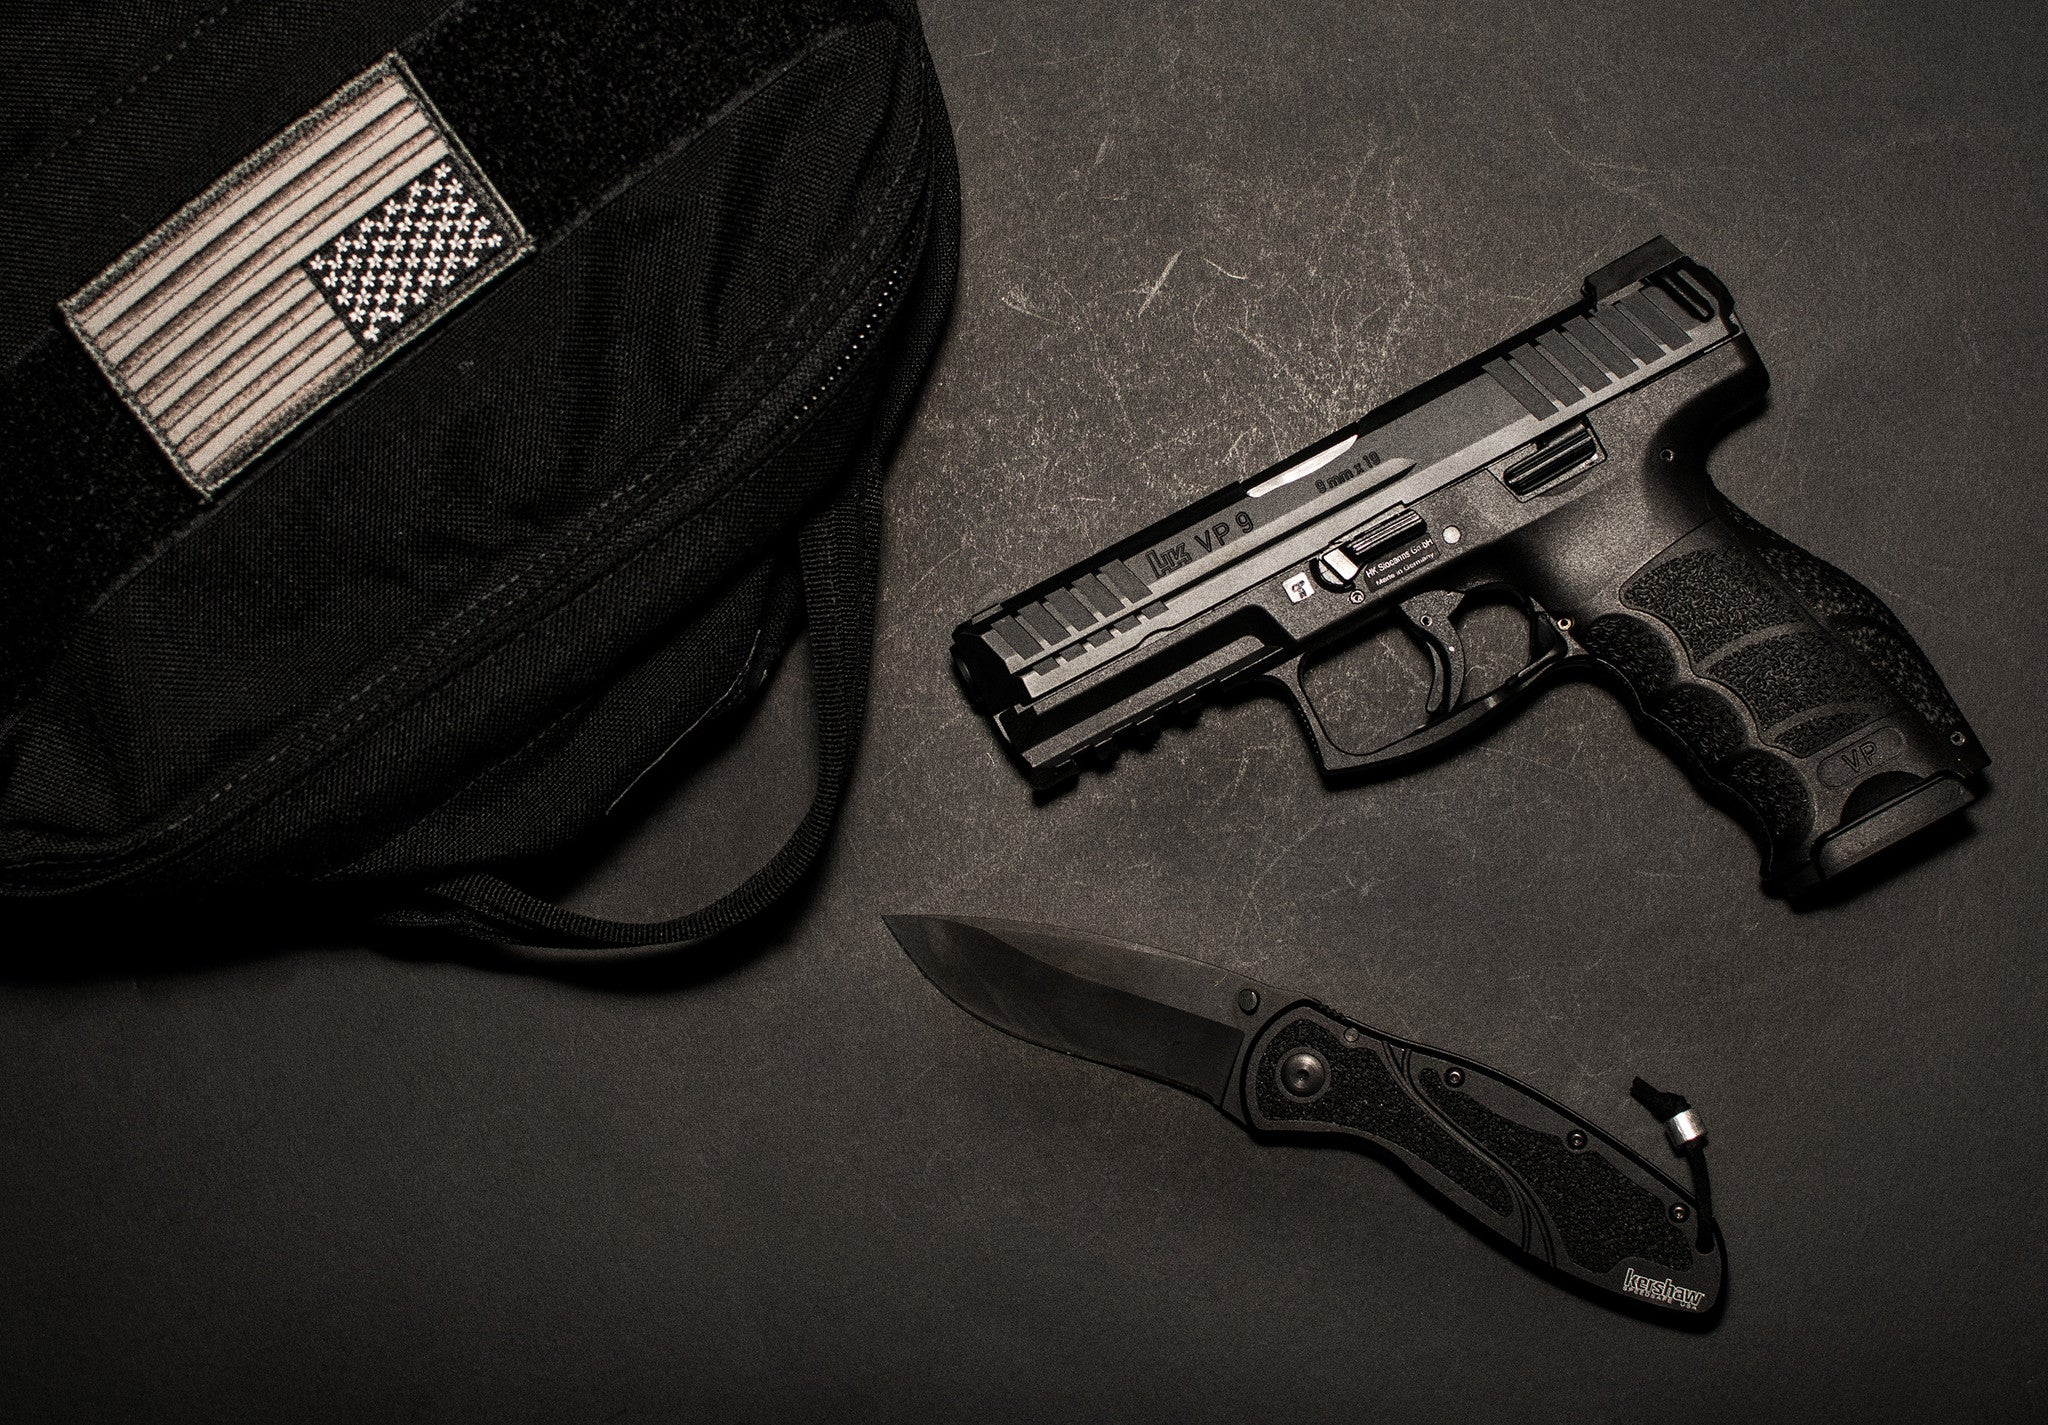 HK VP9 Everyday Carry